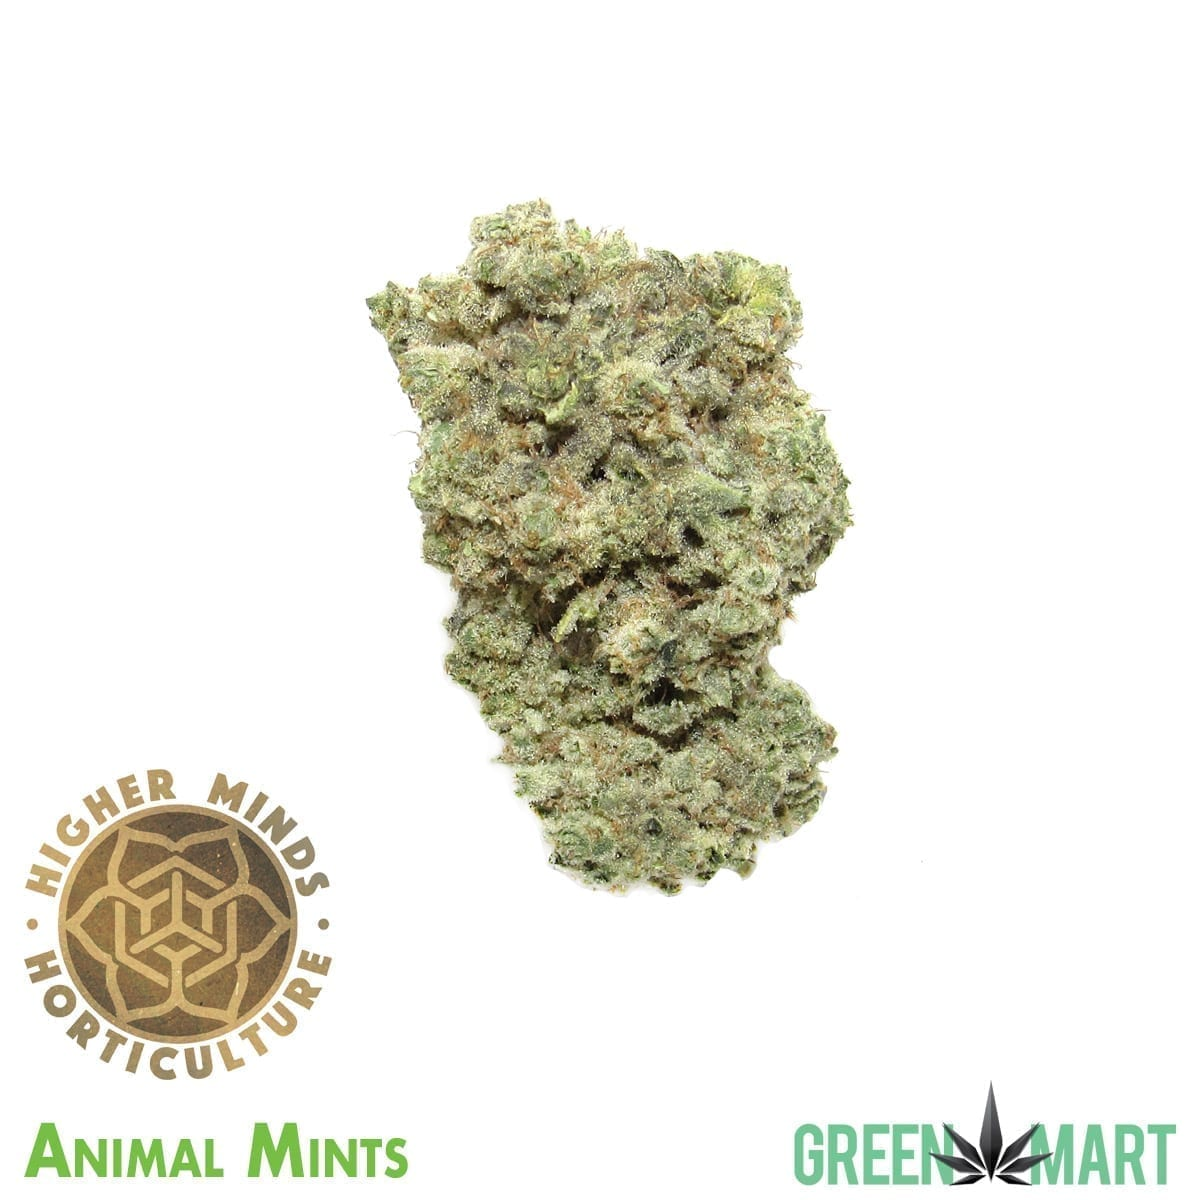 Animal Mints by Higher Minds Horticulture